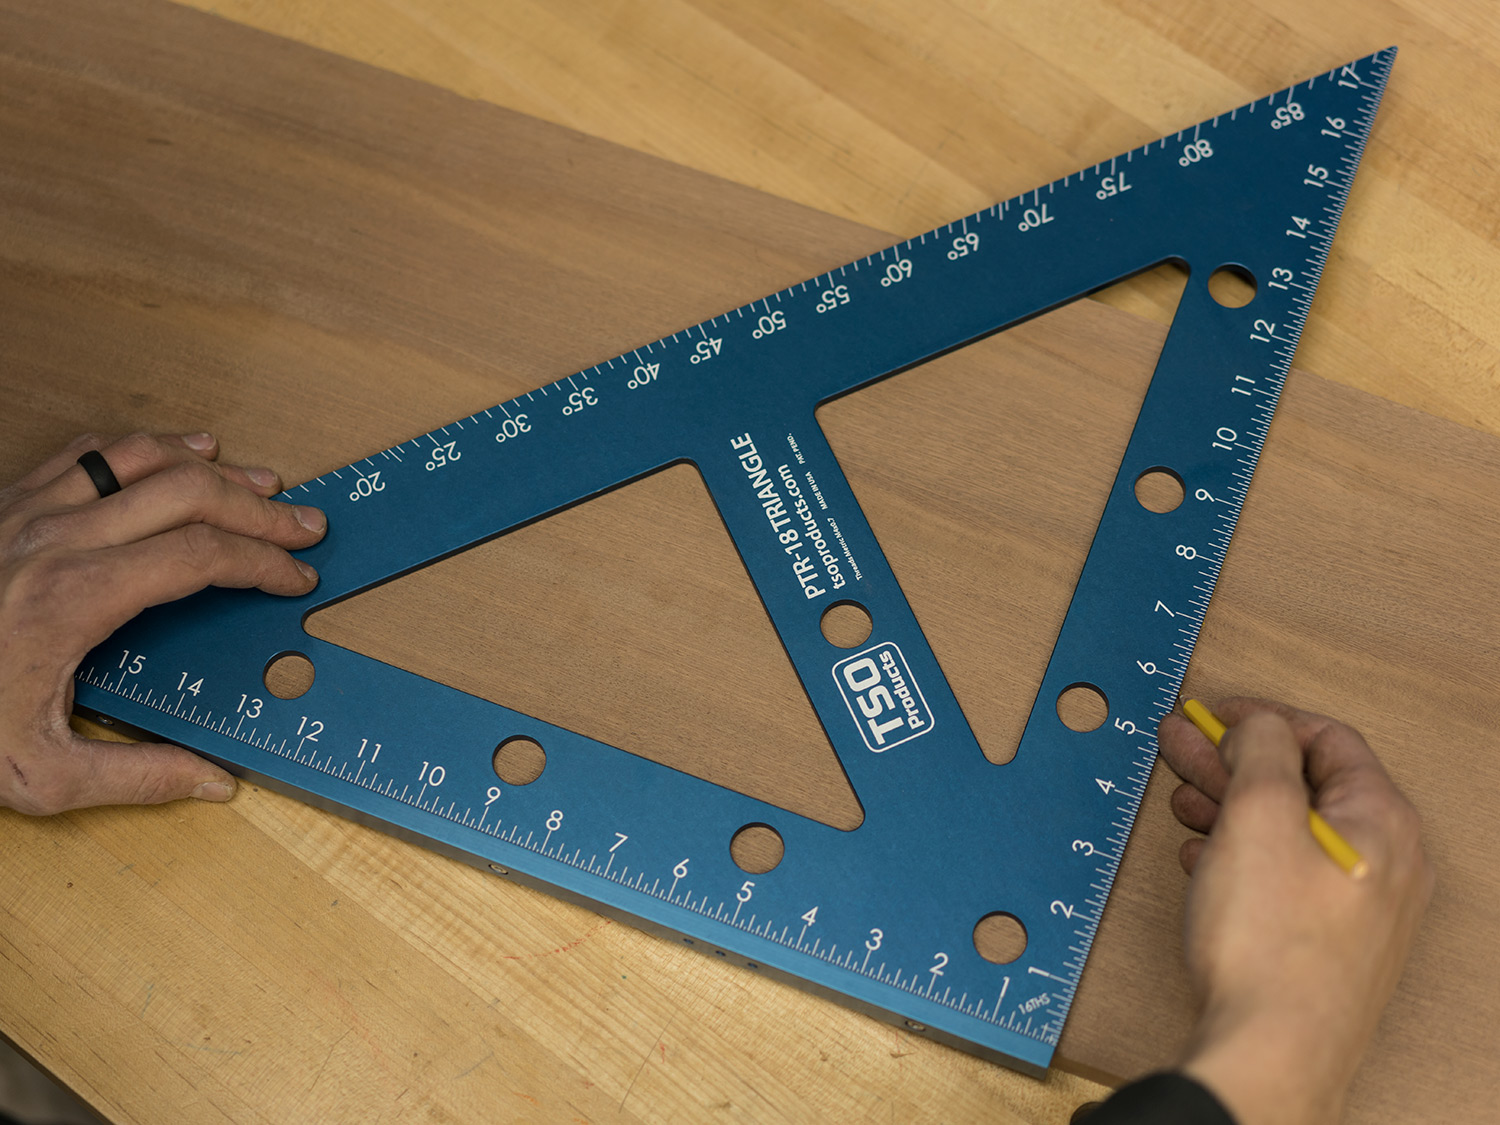 Reference off the edge of your workpiece for dead-square 90 or 45 degree angle marking.